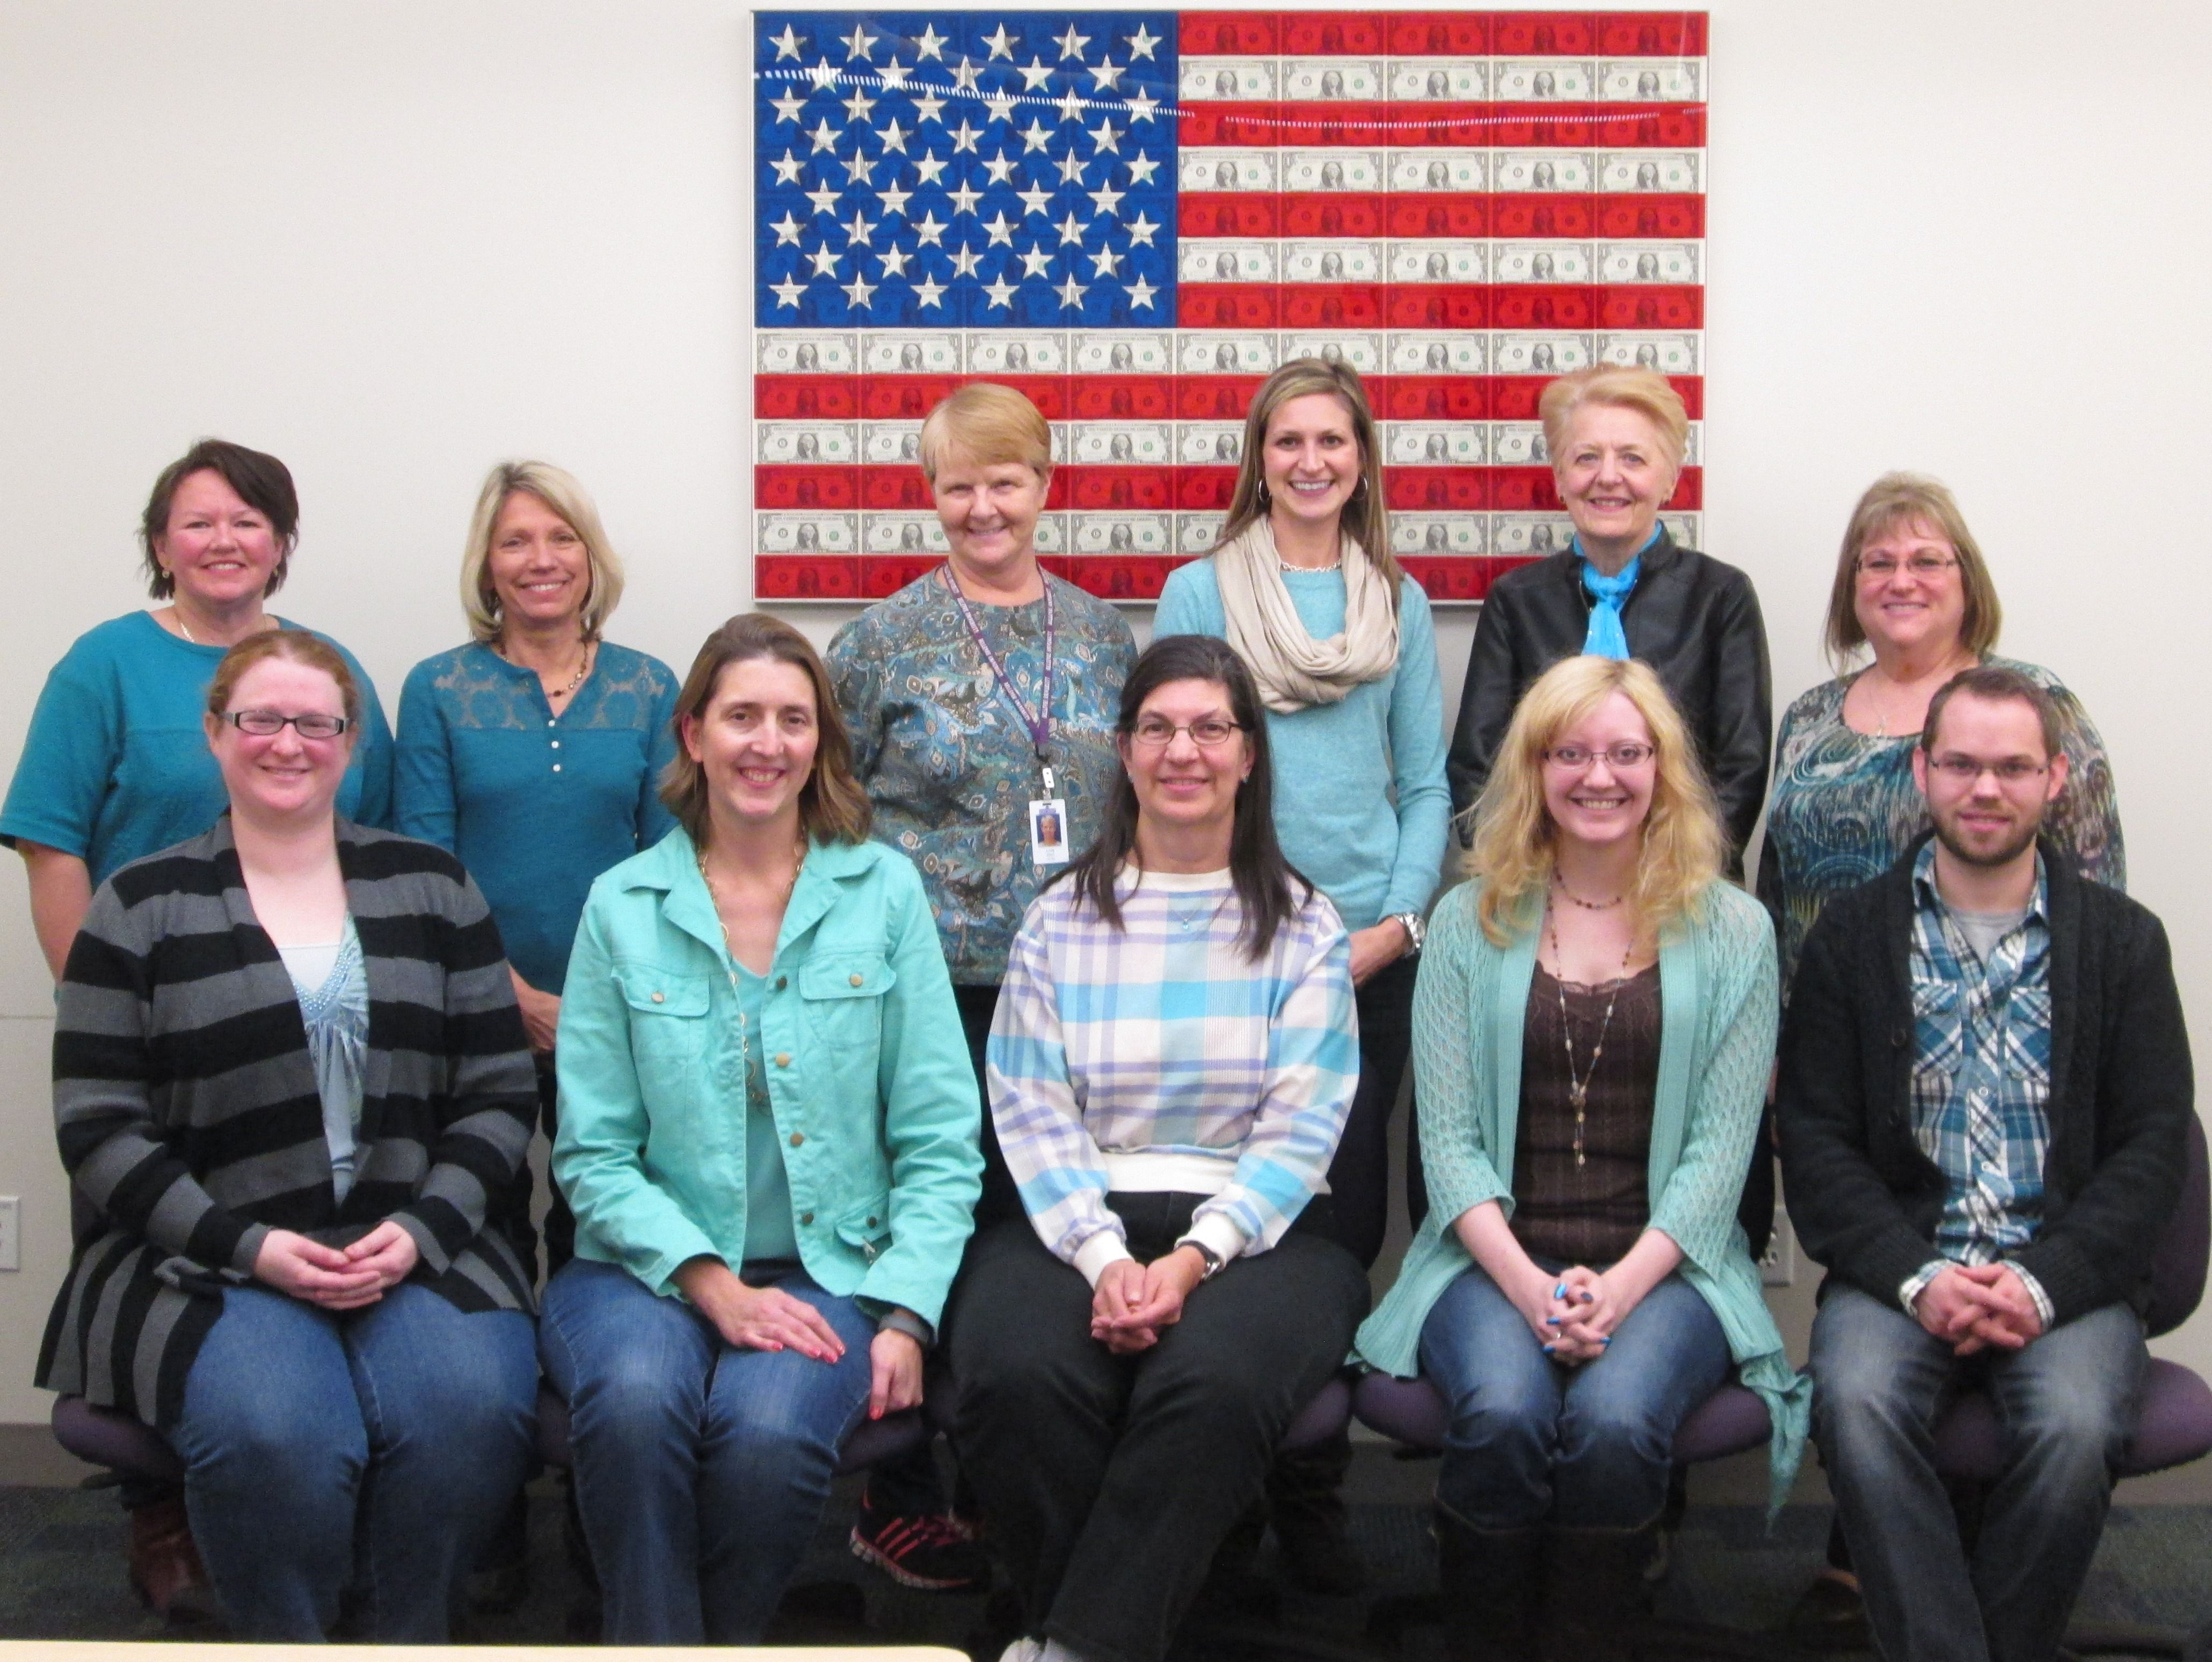 The Bellevue University Staff are showing their support by wearing teal every Wednesday during the month of January to bring awareness to Cervical Cancer Awareness Month.